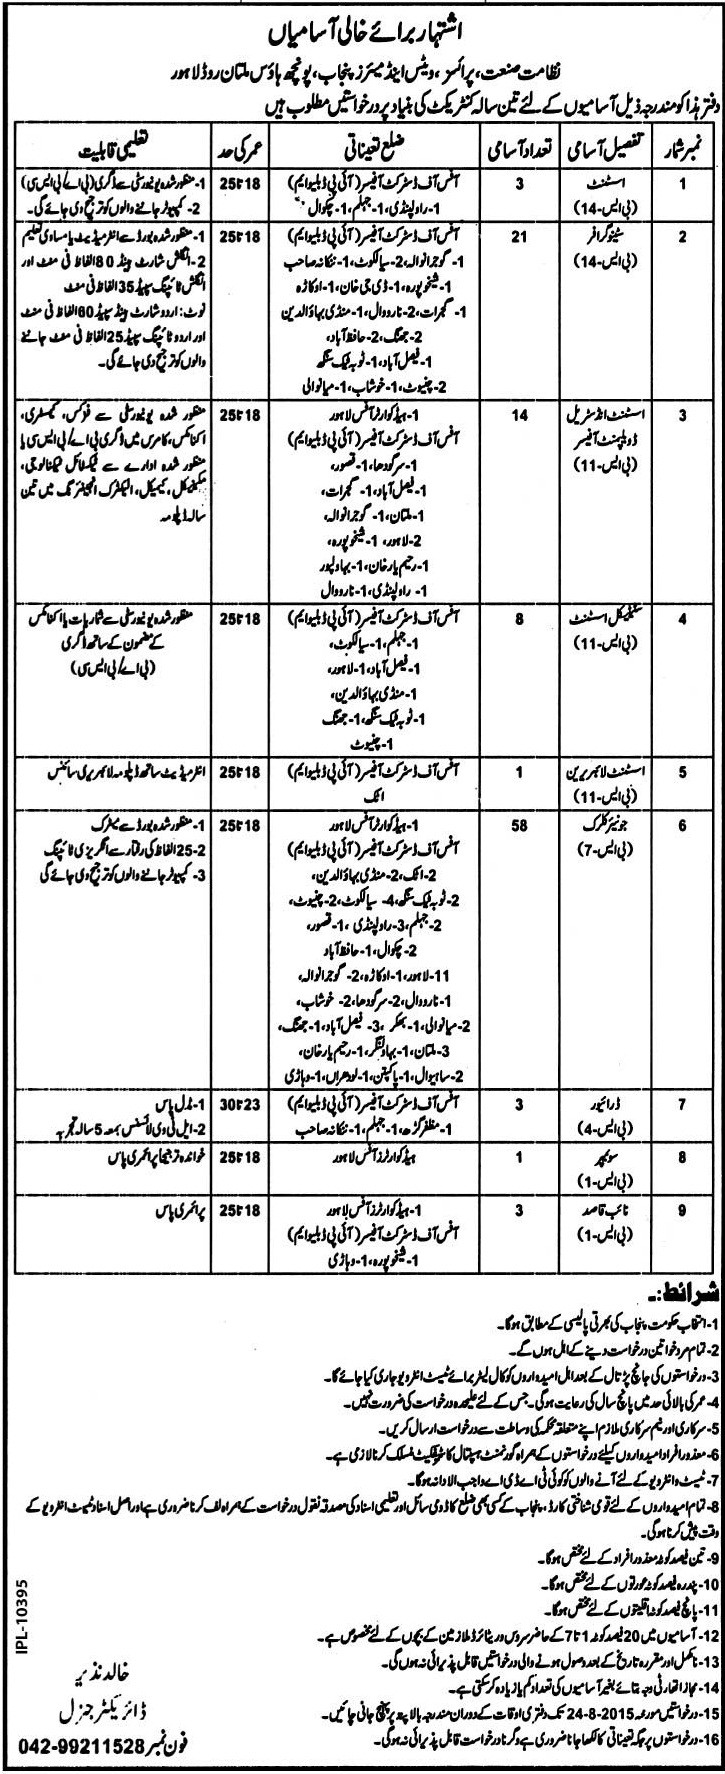 Poonch House Multan Road Lahore August Jobs 2015 Latest Advertisement